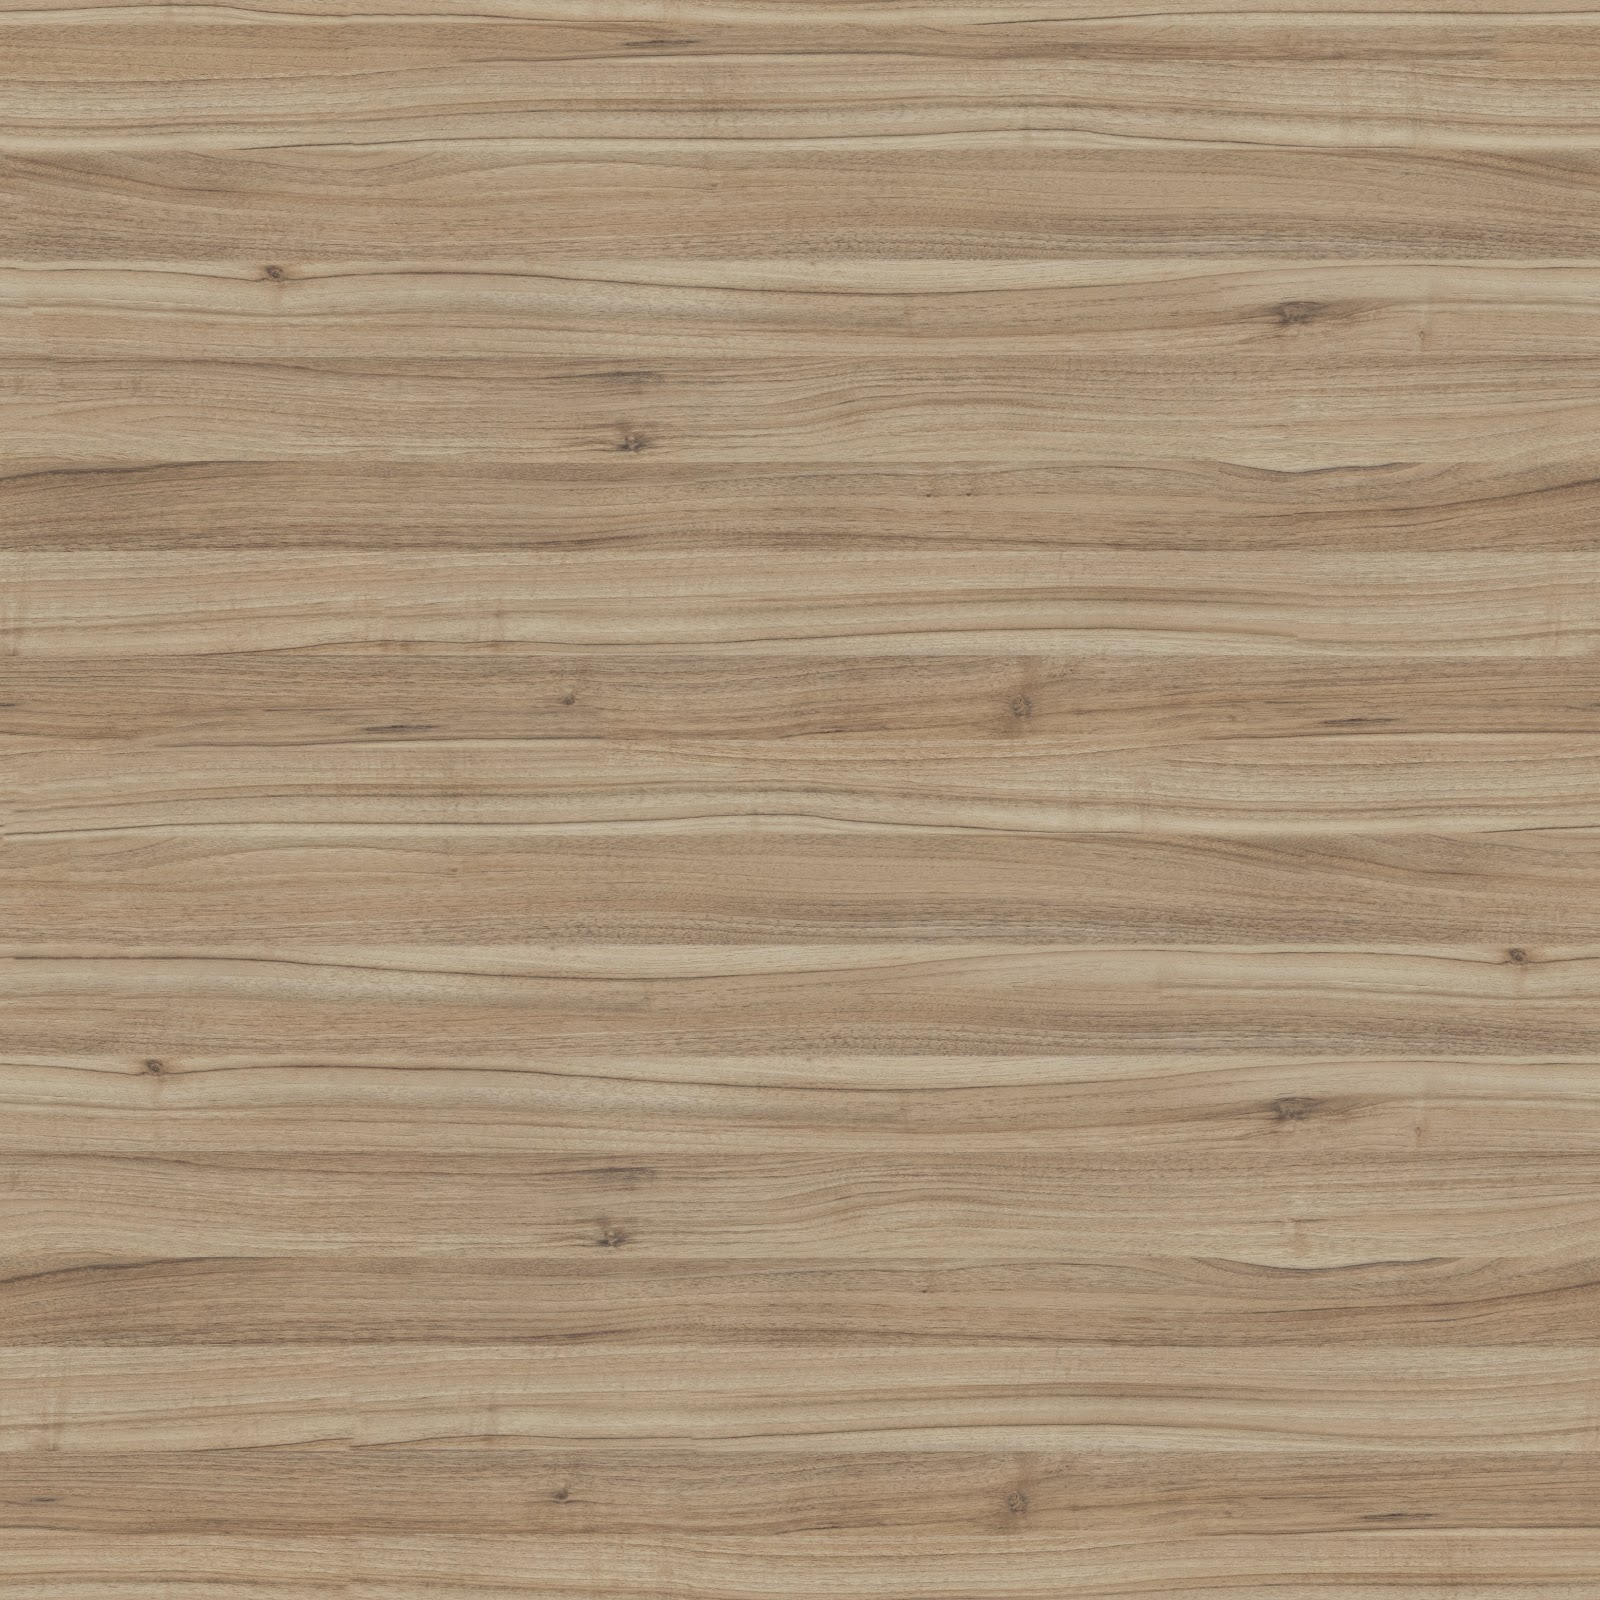 laminate flooring texture seamless wood floor texture seamless bleached oak recherche google CYSSWYX